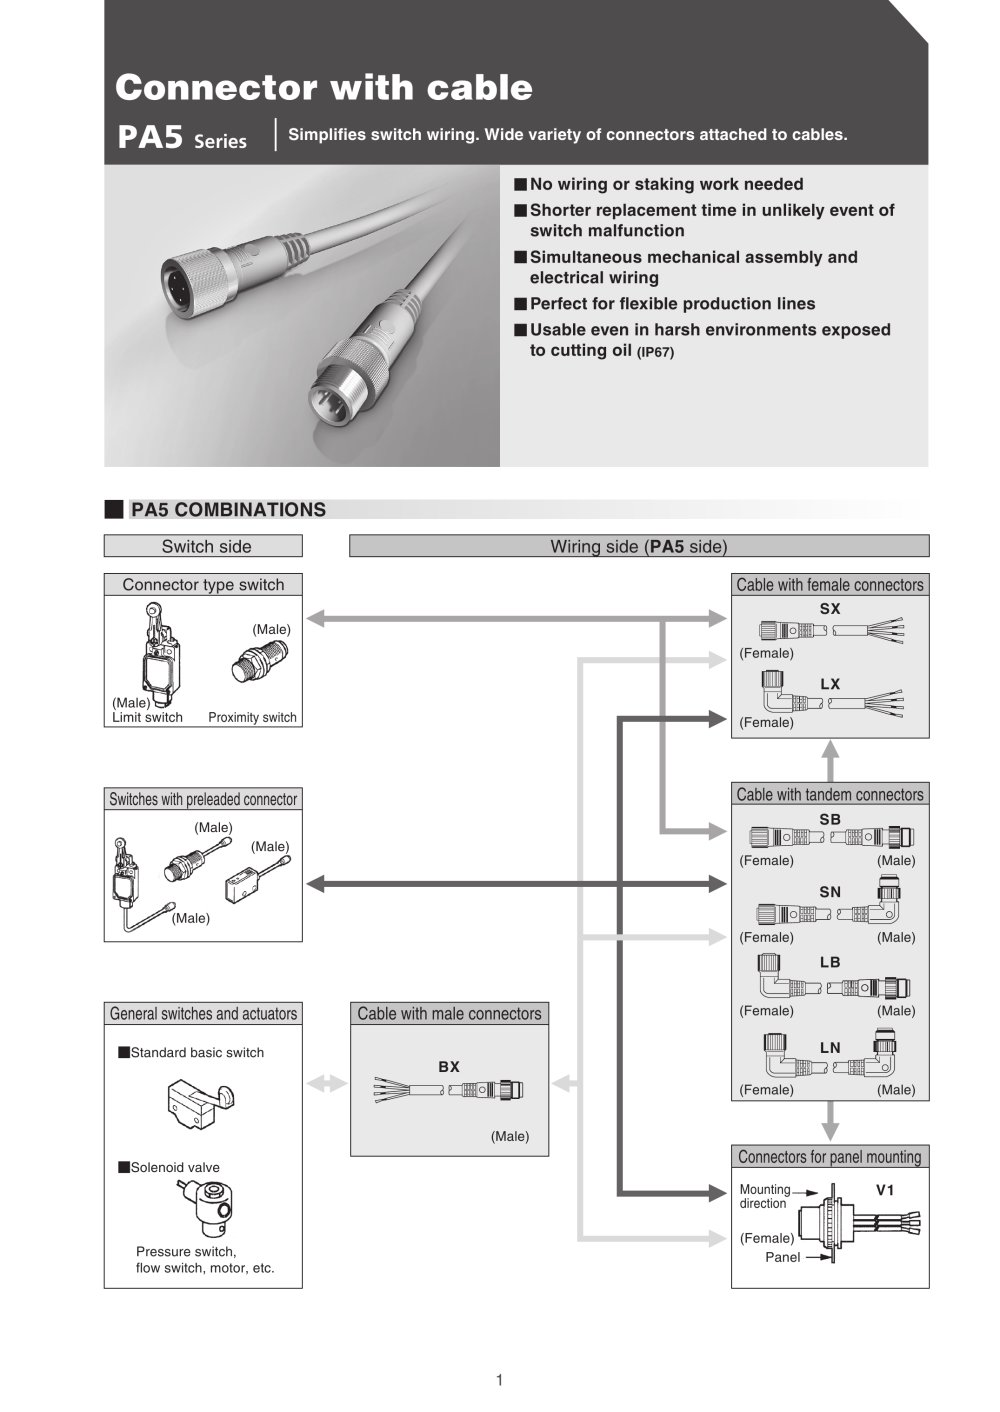 medium resolution of pa5 series m12 connector cable azbil north america pdf catalogue l3 wiring diagram m12 switch wiring diagram